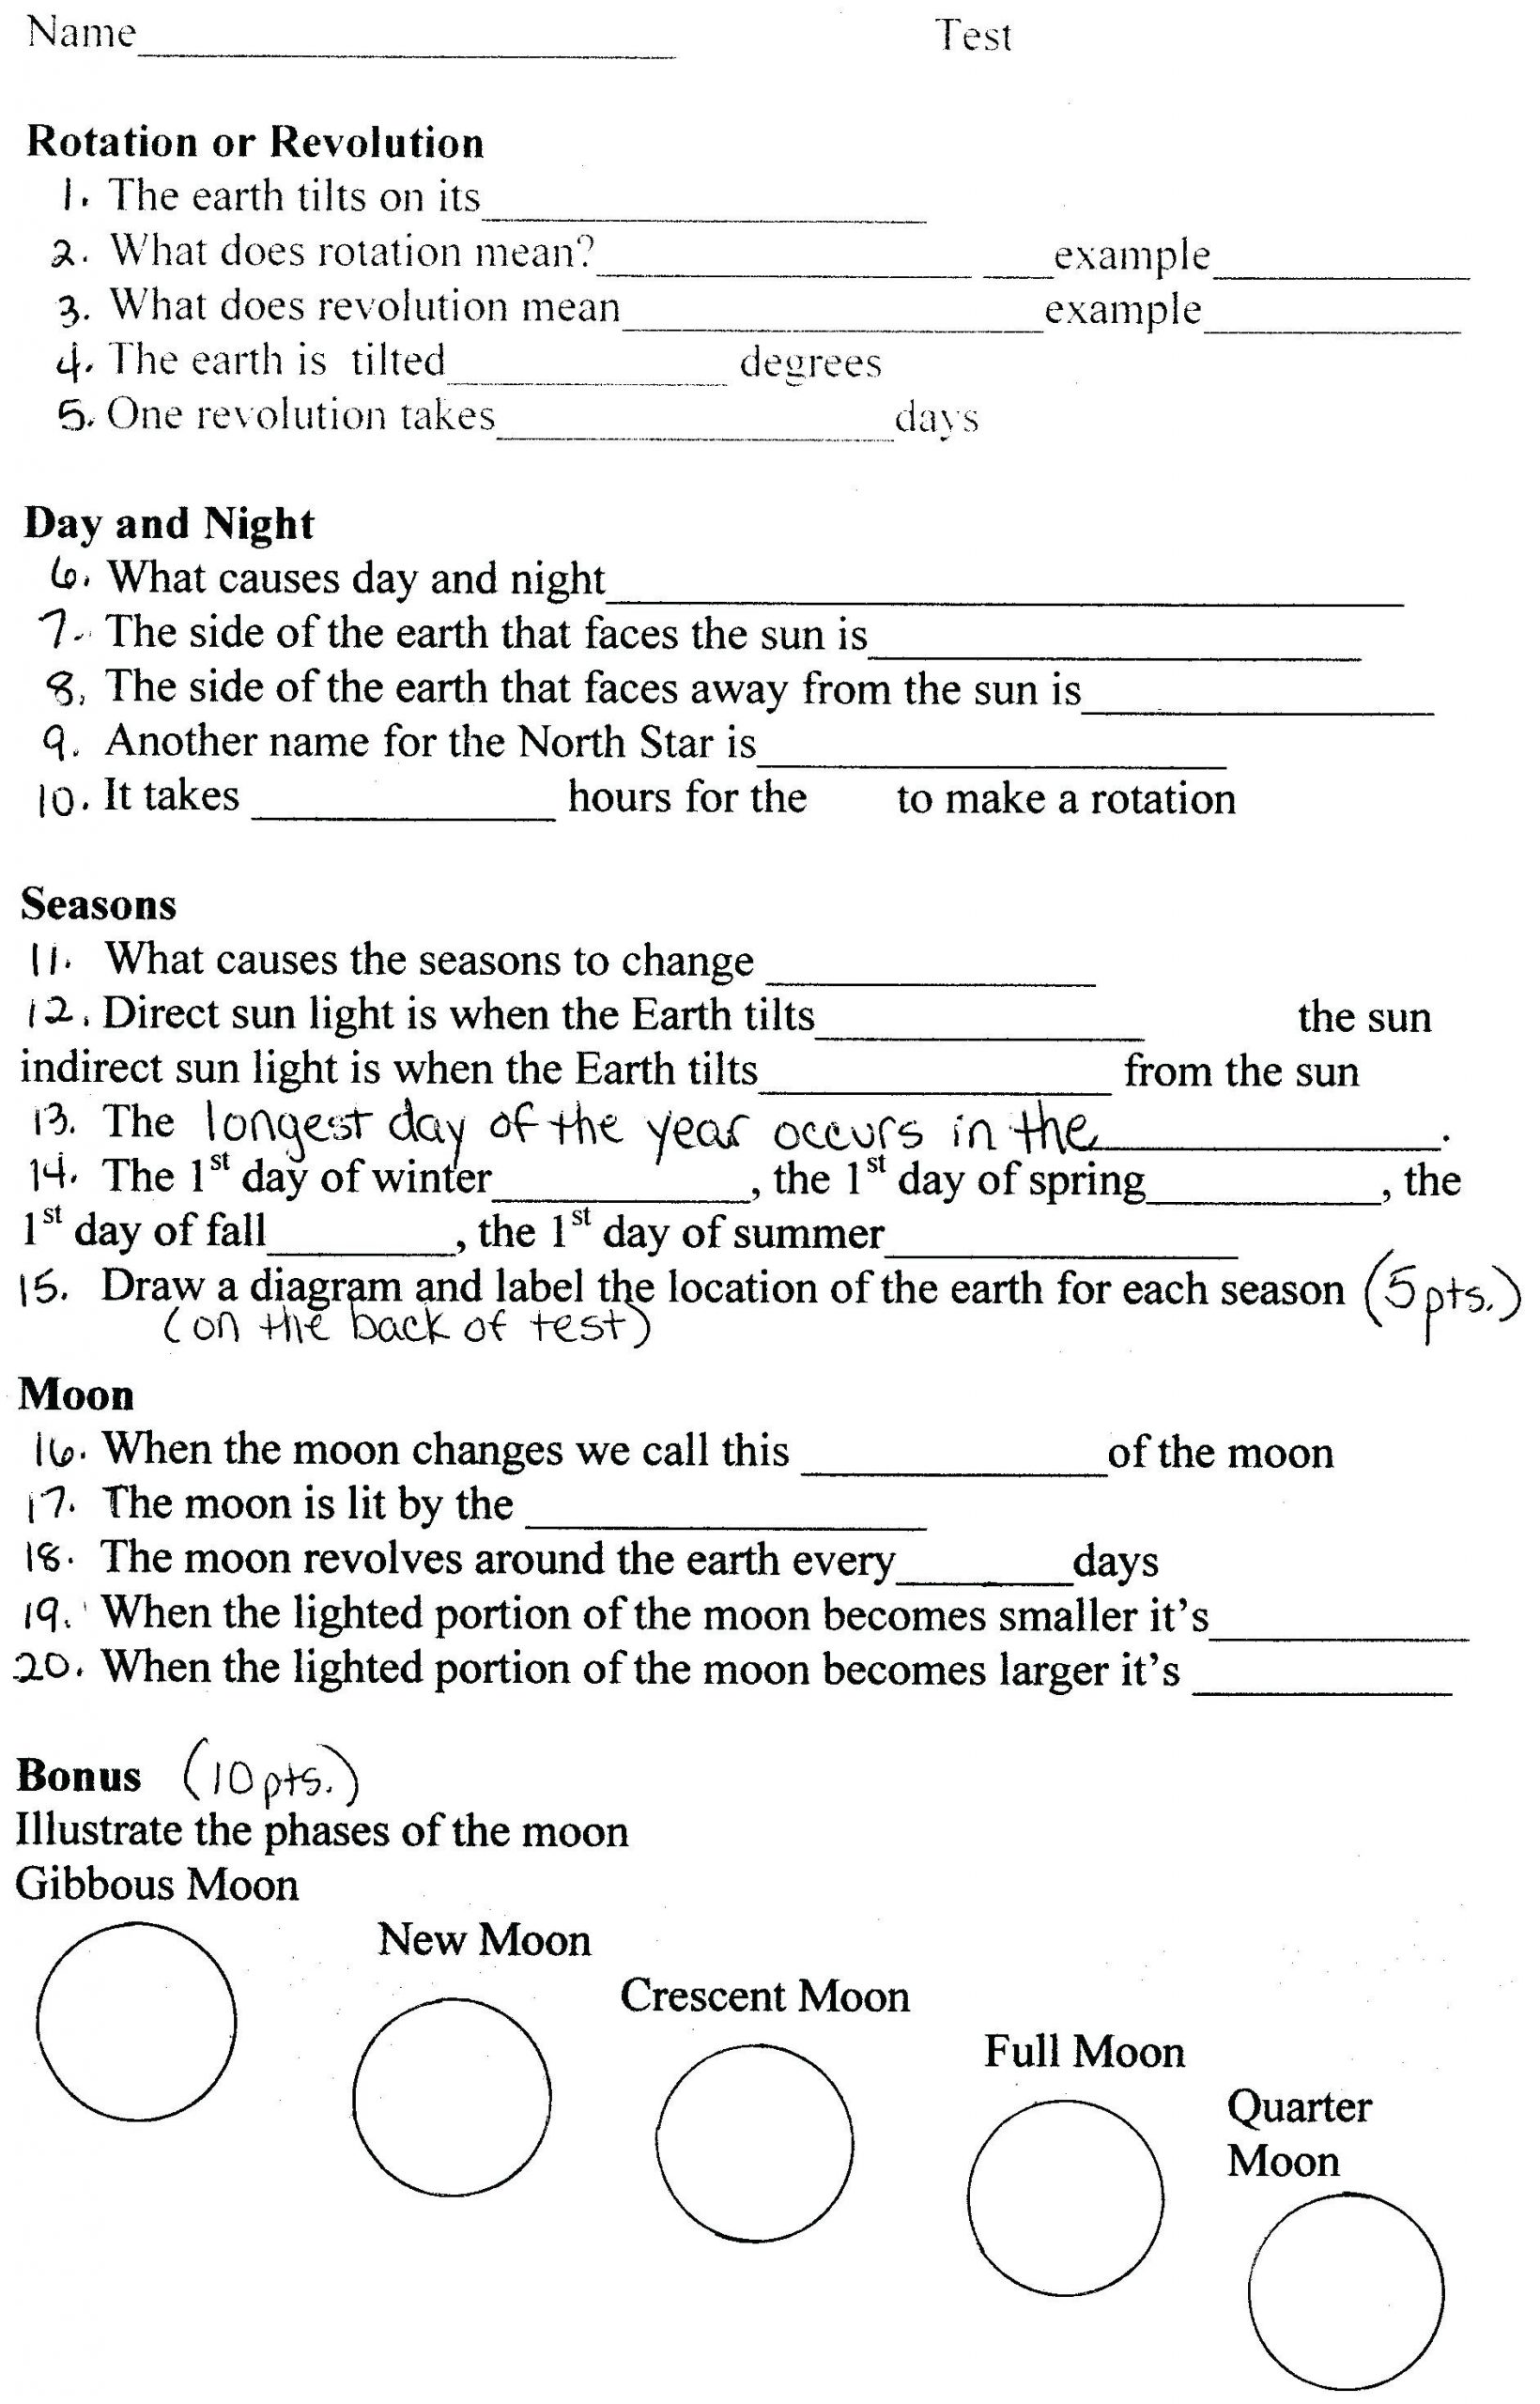 Moon Phases Worksheet Pdf Phases the Moon Worksheets 3 5 Main Phases the Moon